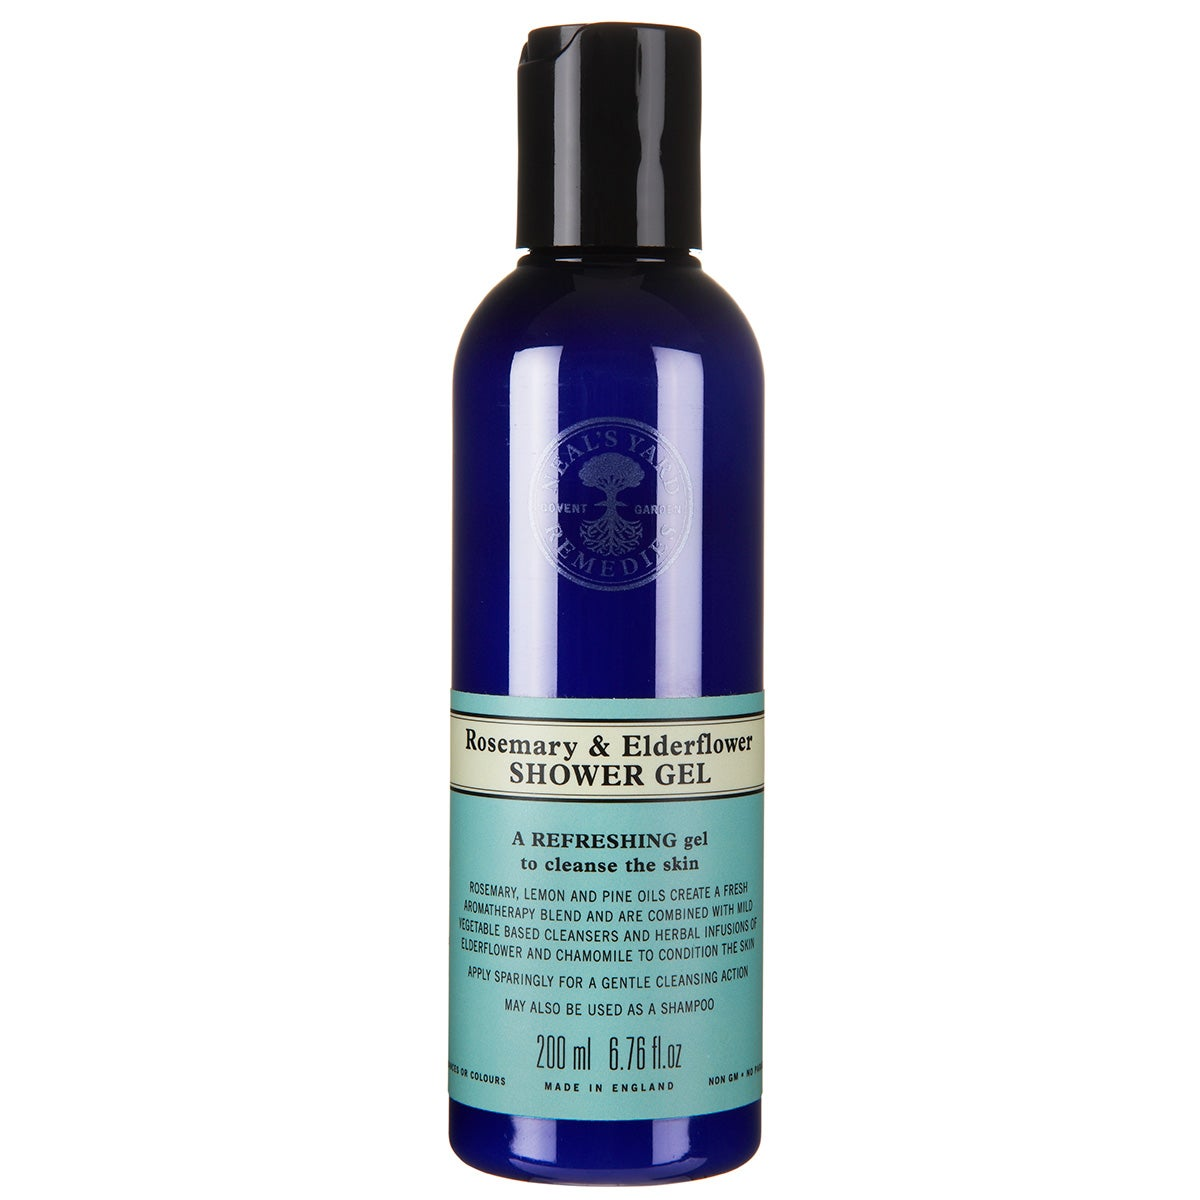 Neal's Yard Remedies Rosemary & Elderflower Shower Gel